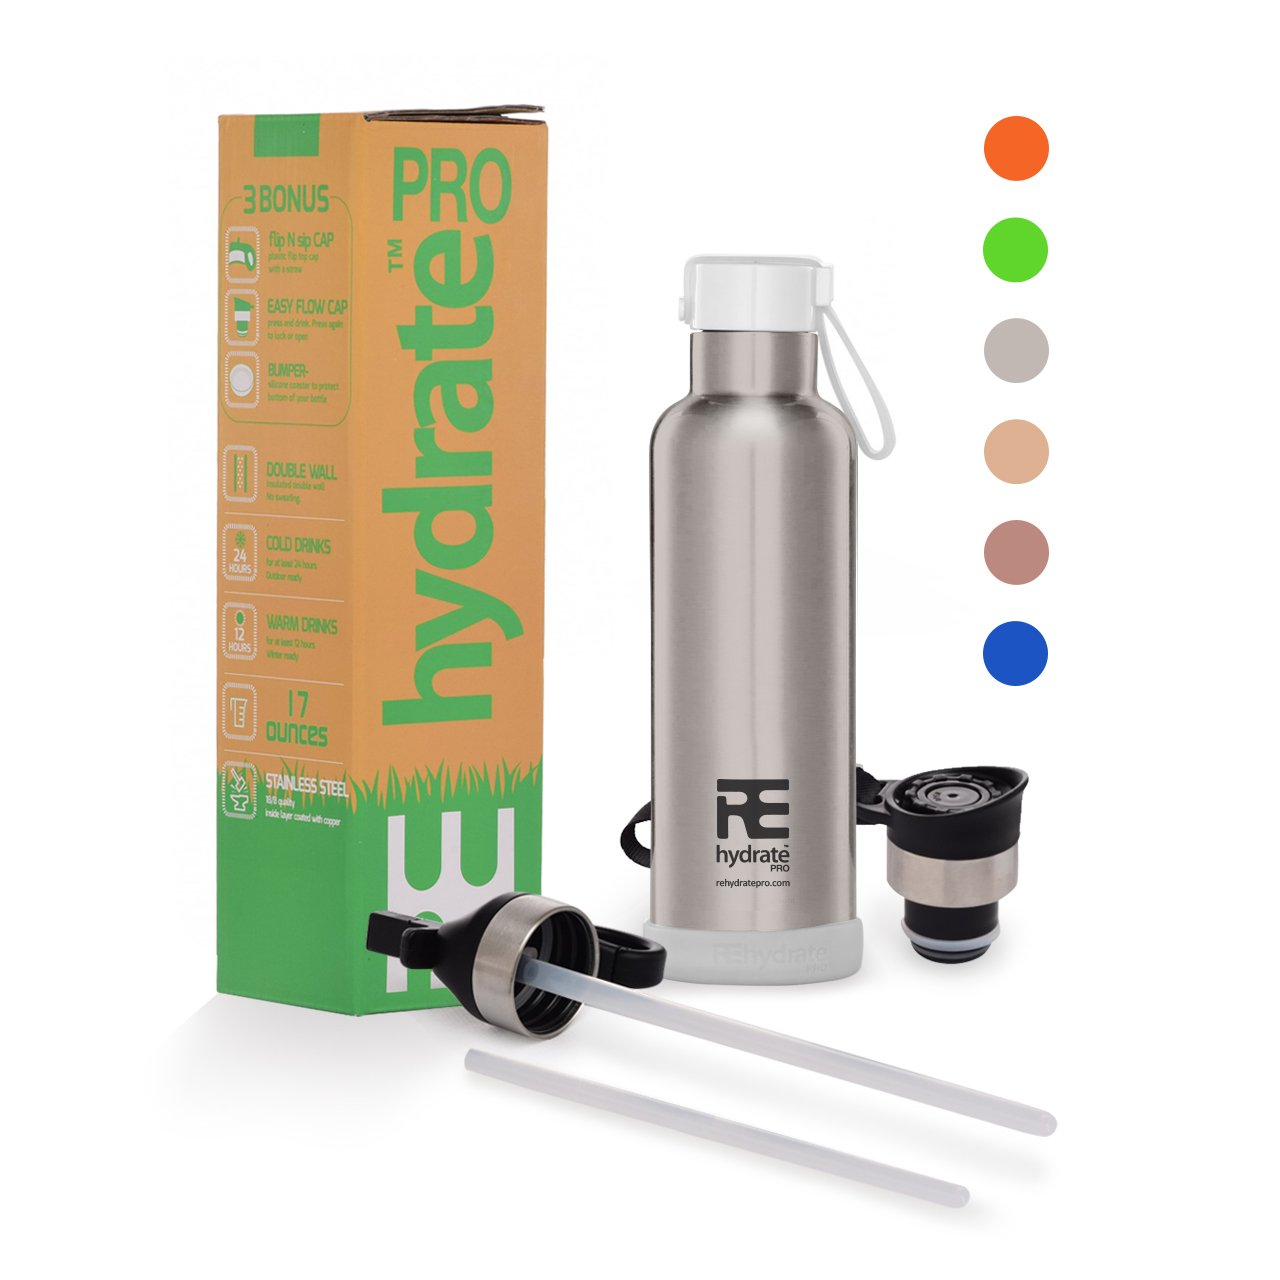 Rehydrate Pro (Chrome 17 oz Kids Insulated Water Double Wall Bottle Stainless Steel Metal Flask Bonus Lids and Straws. Simple Modern Thermal Leak Proof Flask that keeps Drinks Cold and Hot